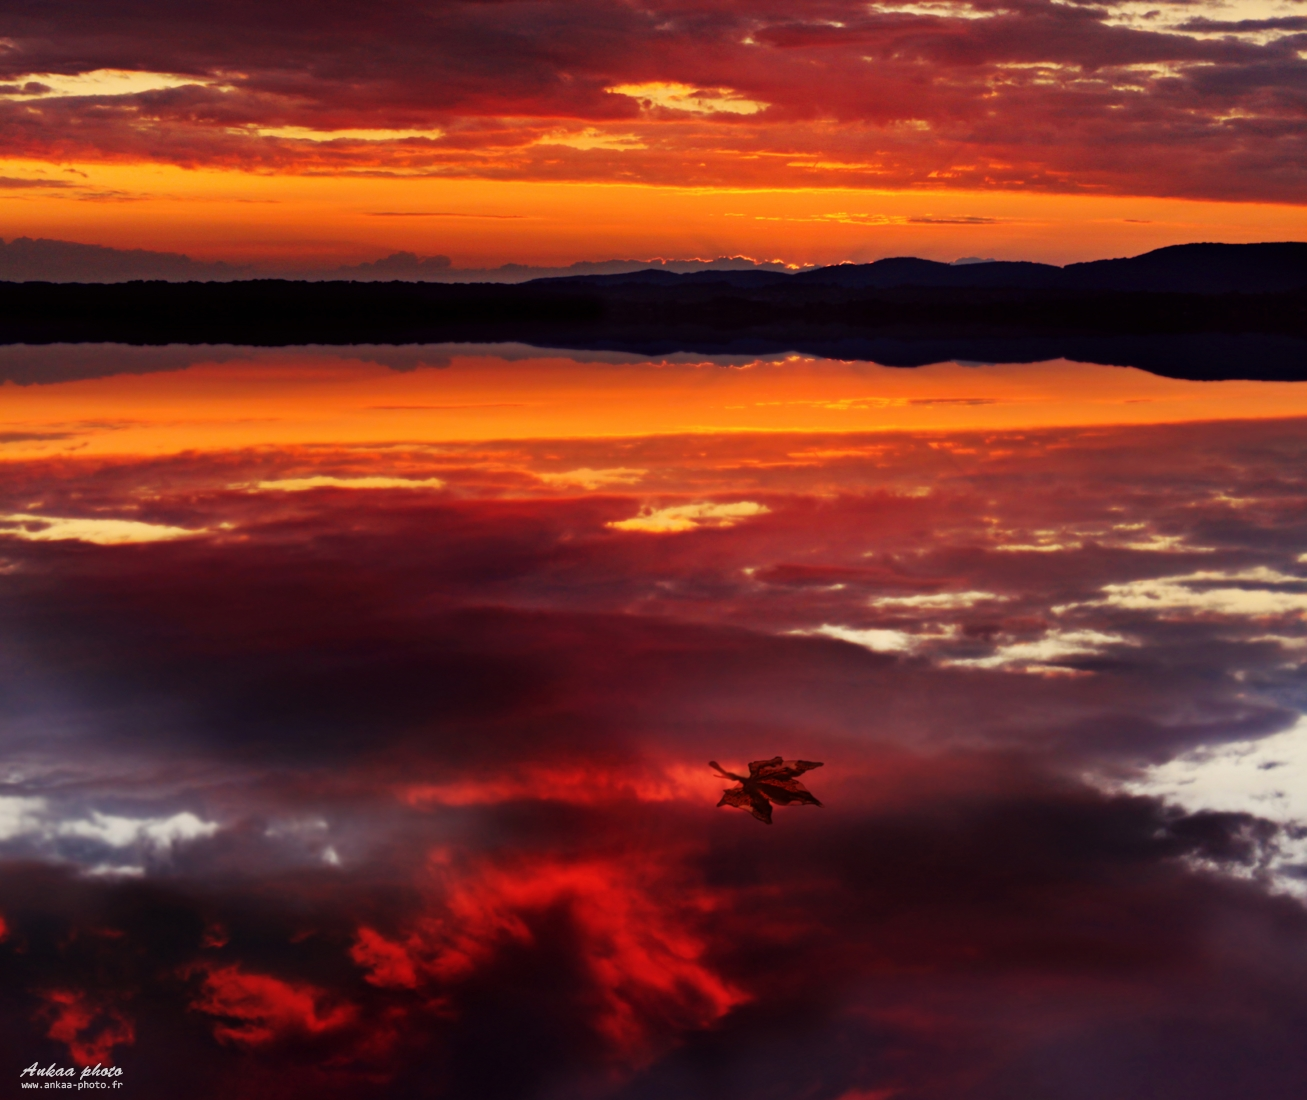 ankaa, photo, lisa, vizzini, photo, image, fond, ecran, hd, paysages, landscapes, art, photoshop, canon, nikon, lac, lake, fire, feu, montagne, coucher de soleil,